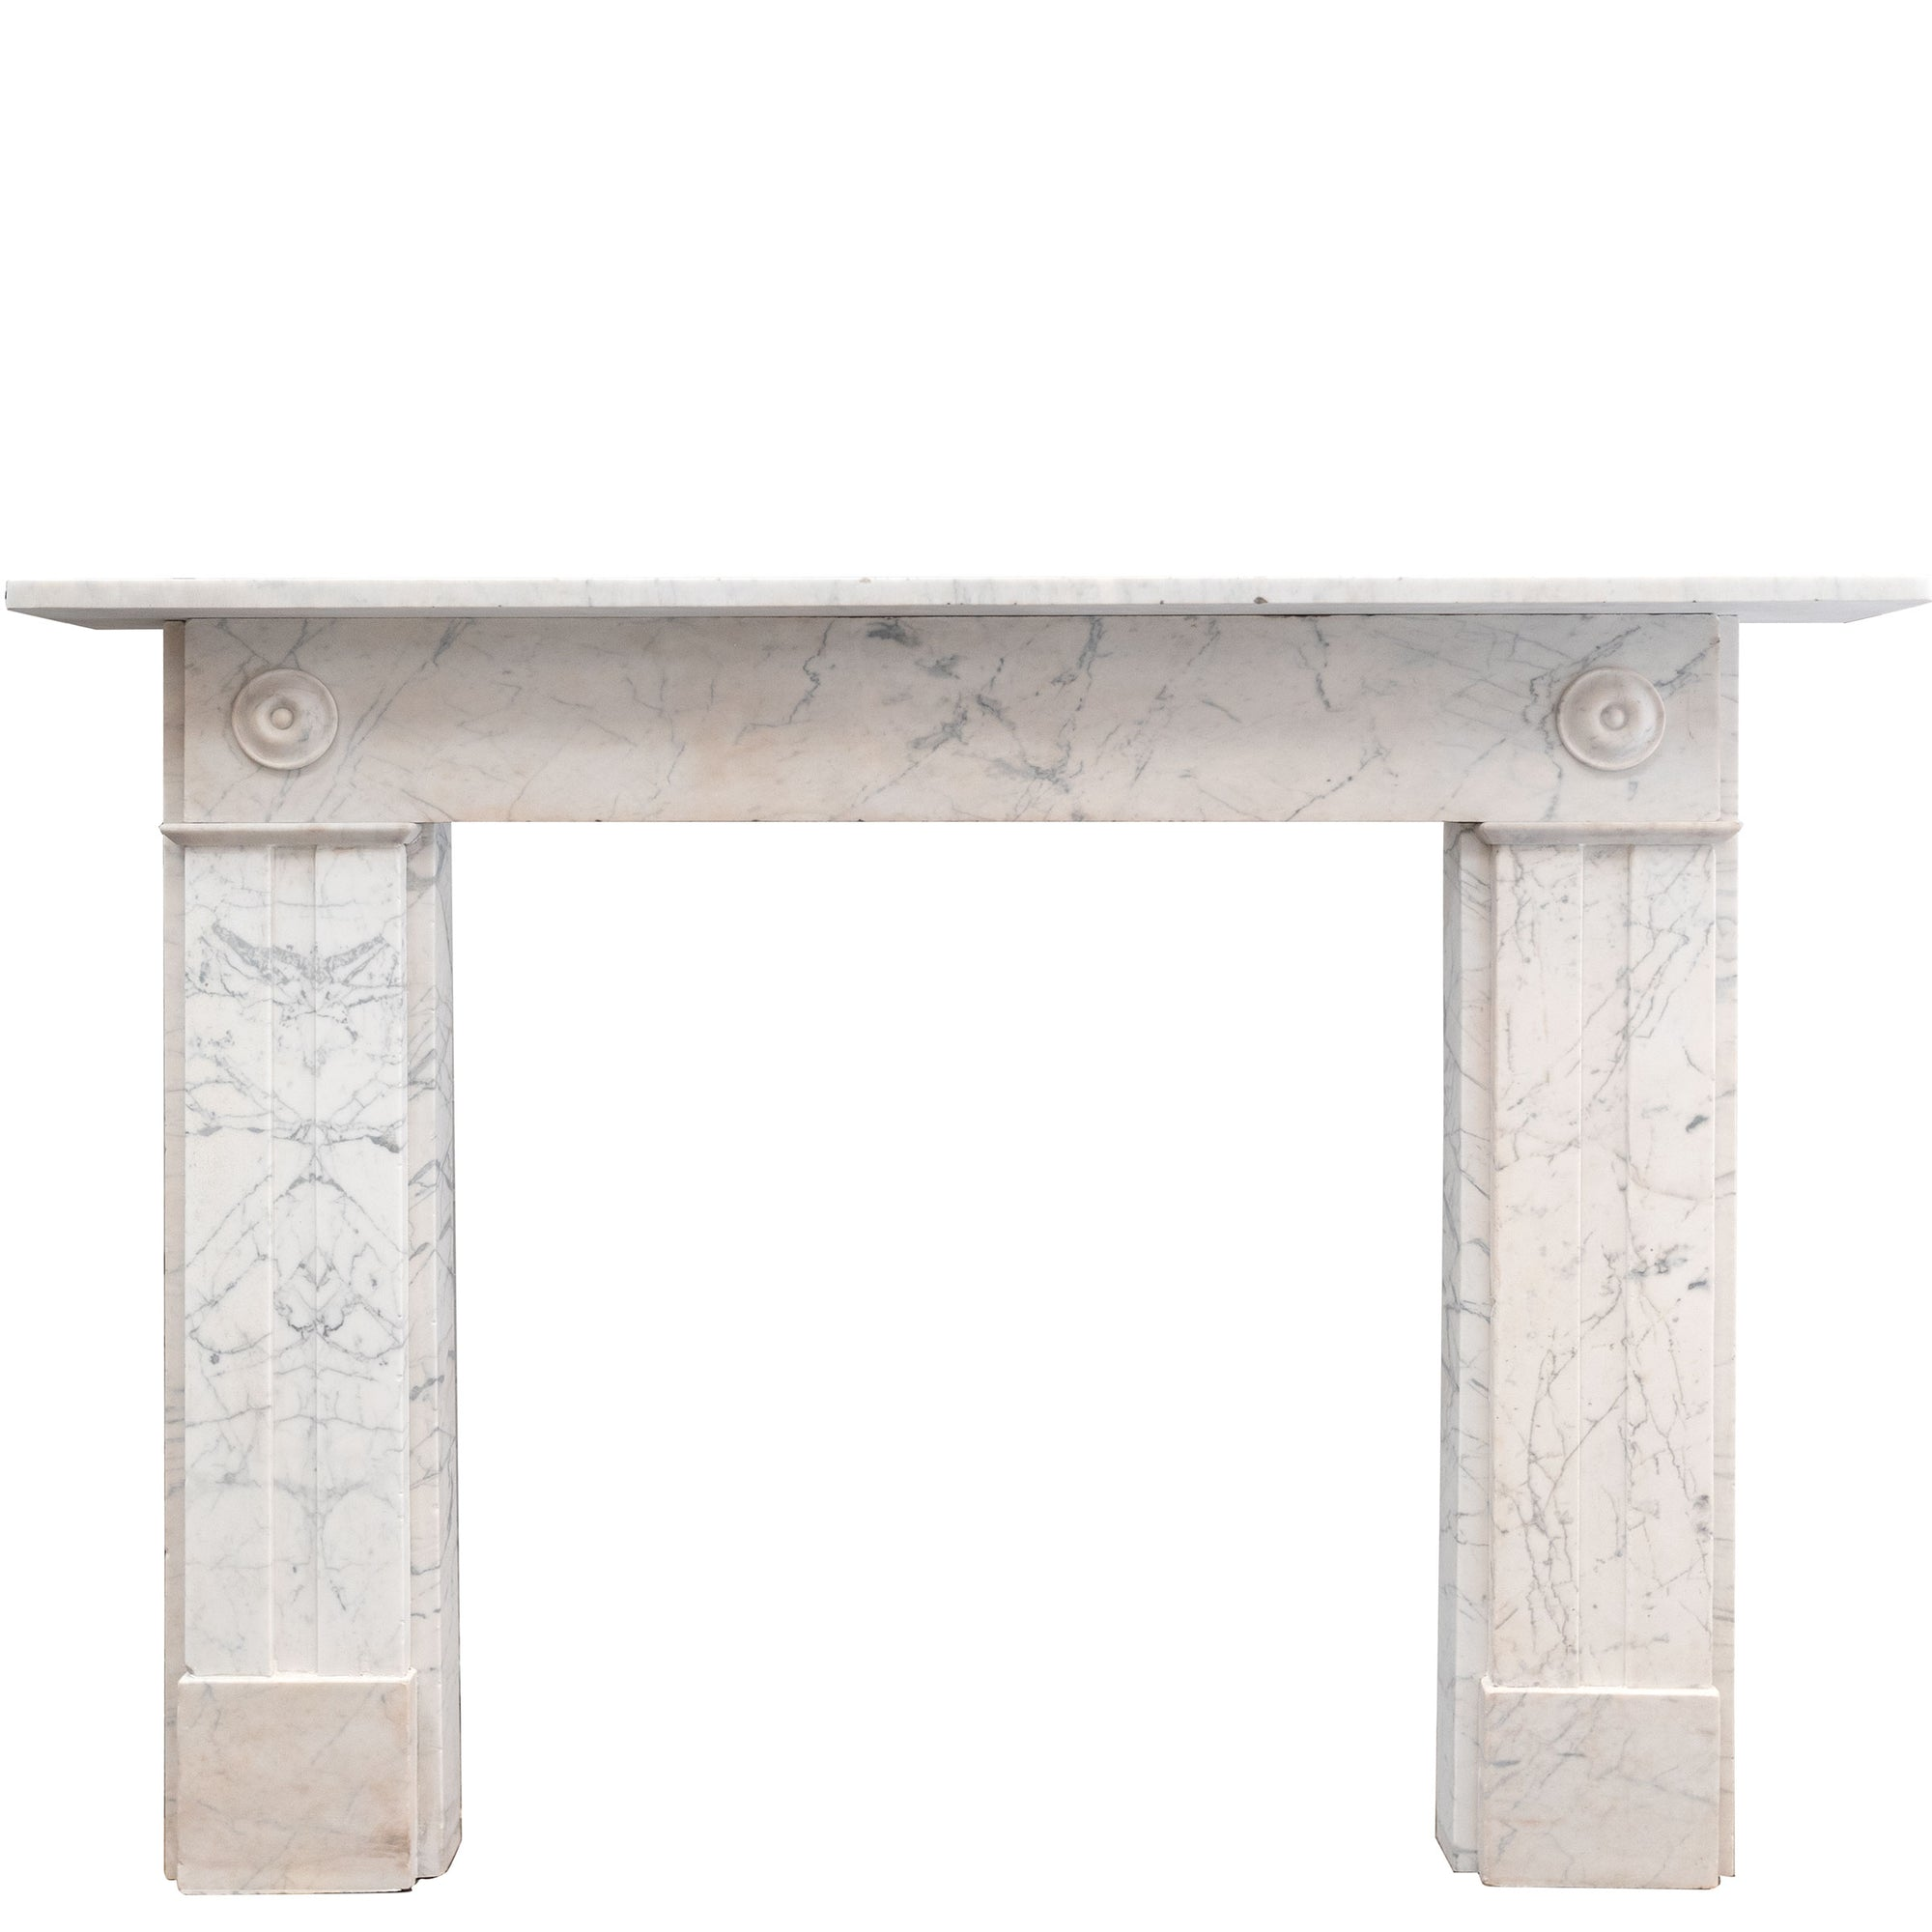 Antique Georgian Carrara Bullseye Fireplace Surround - The Architectural Forum